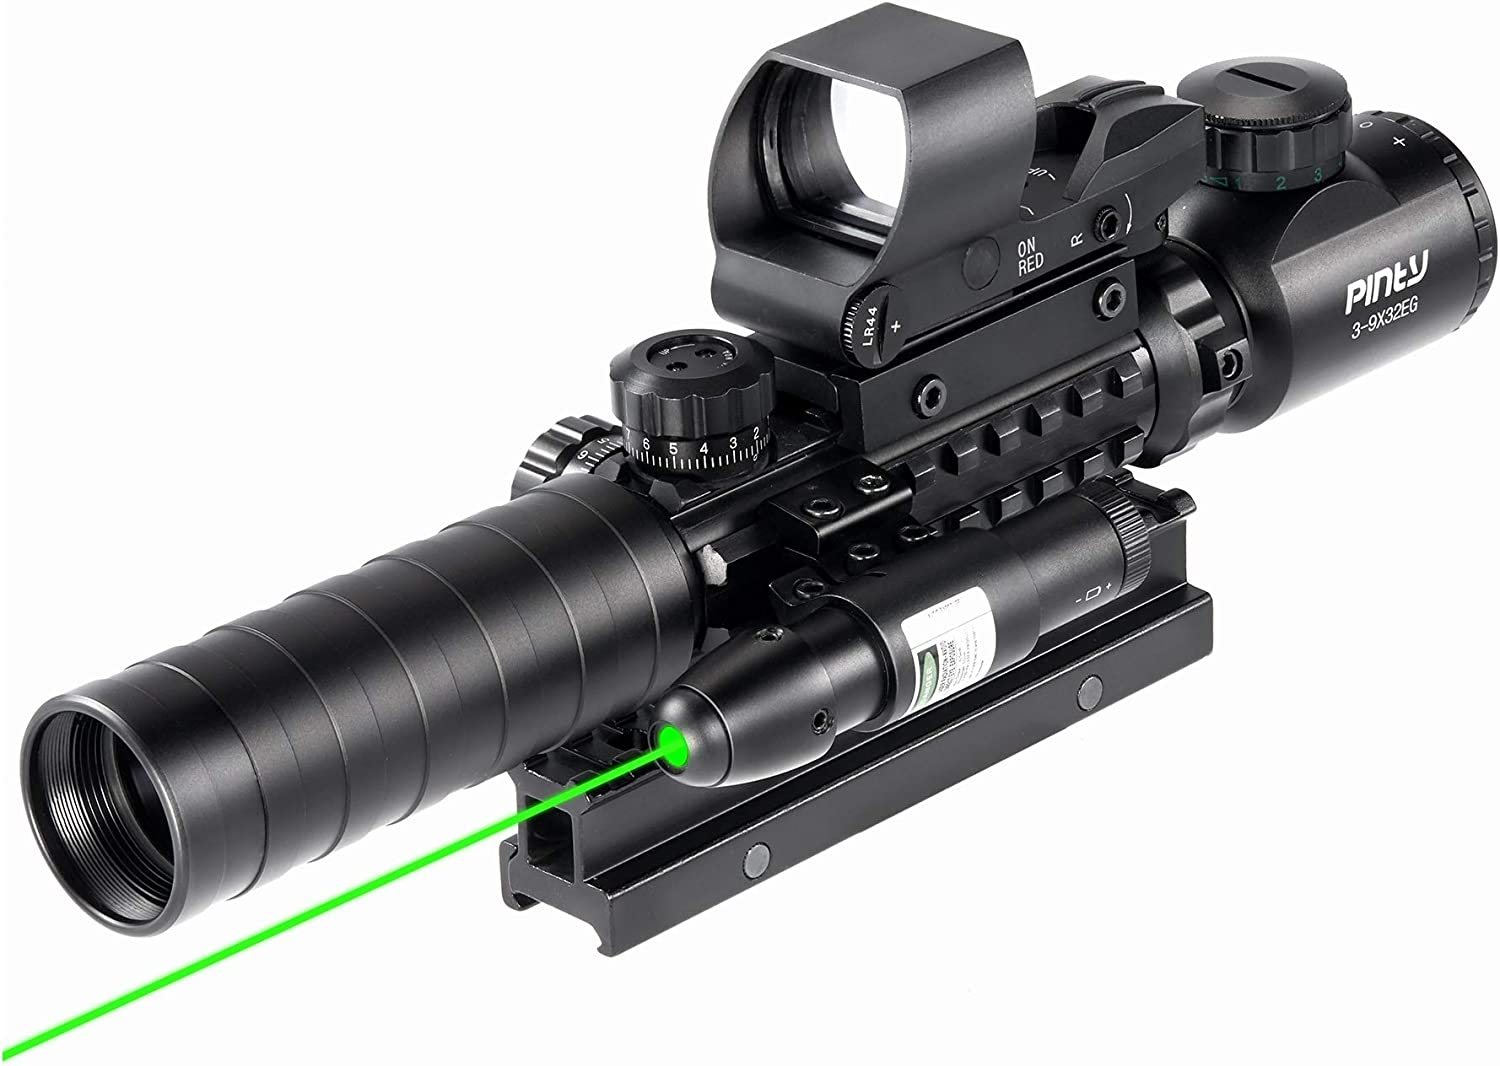 Pinty Rifle Scope 3-9×32 Rangefinder Illuminated Reflex Sight